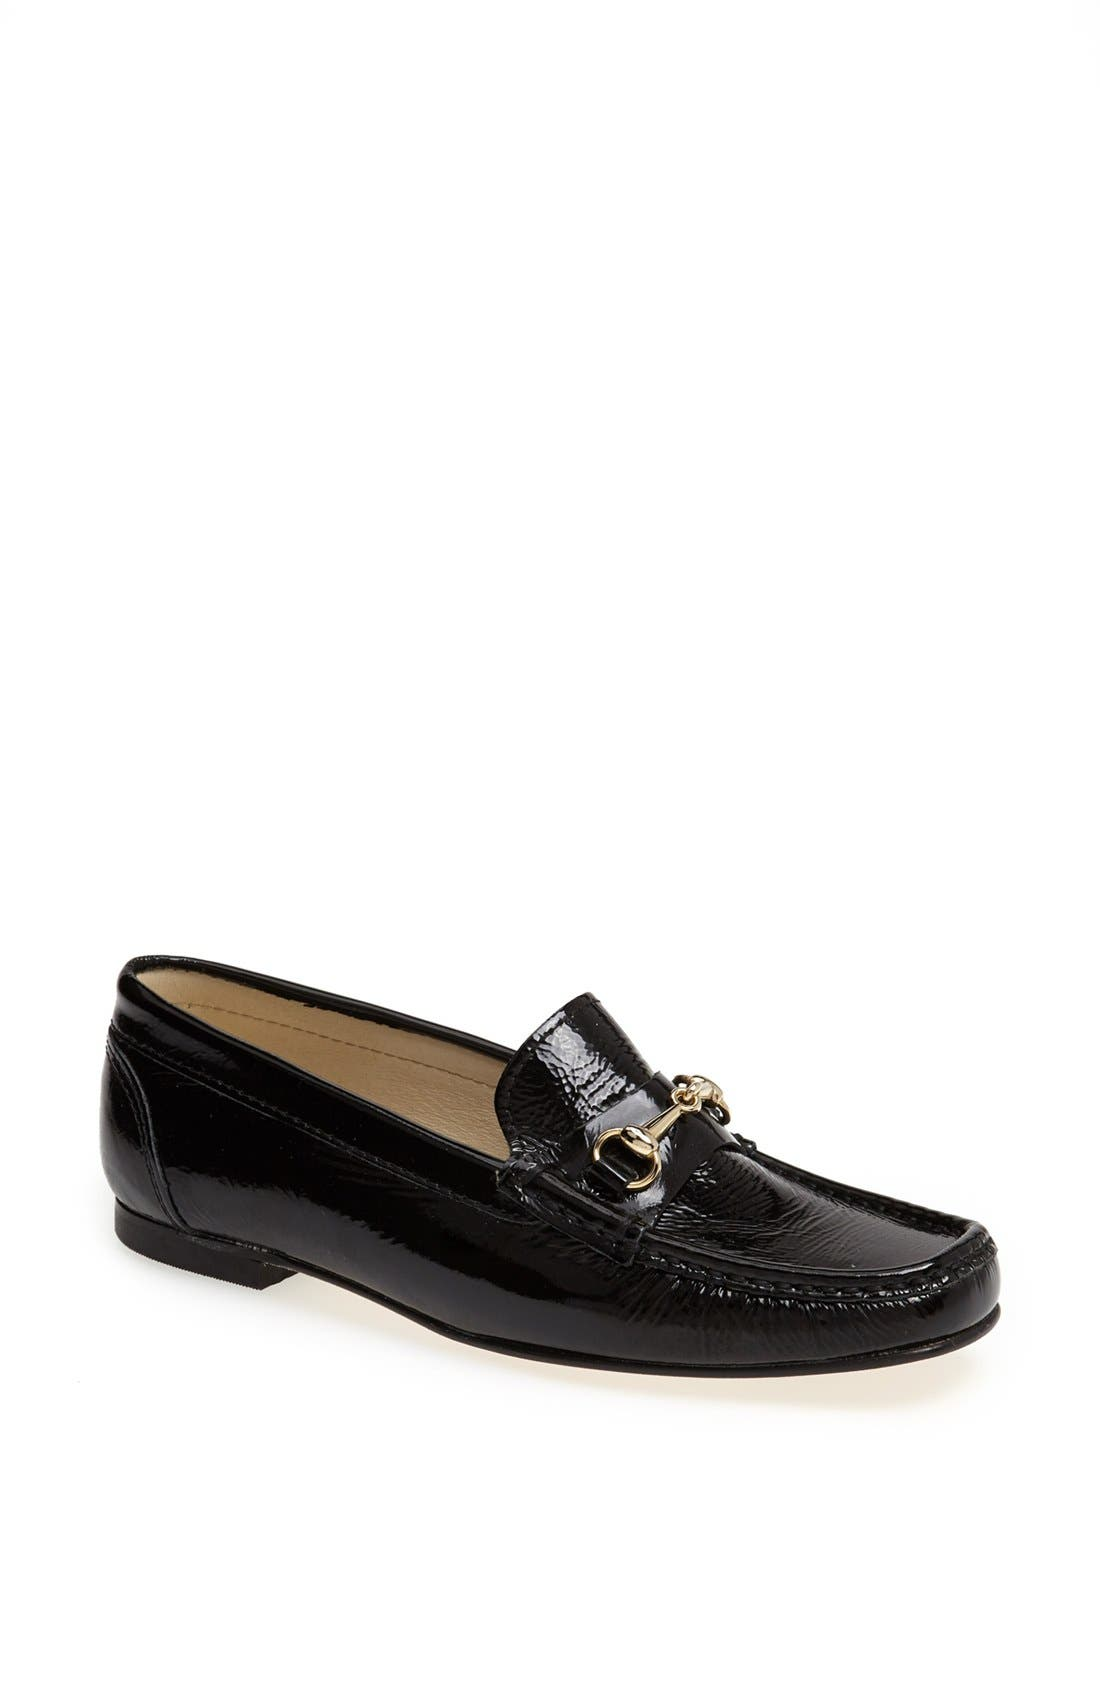 Main Image - French Sole 'Lecture' Patent Leather Flat